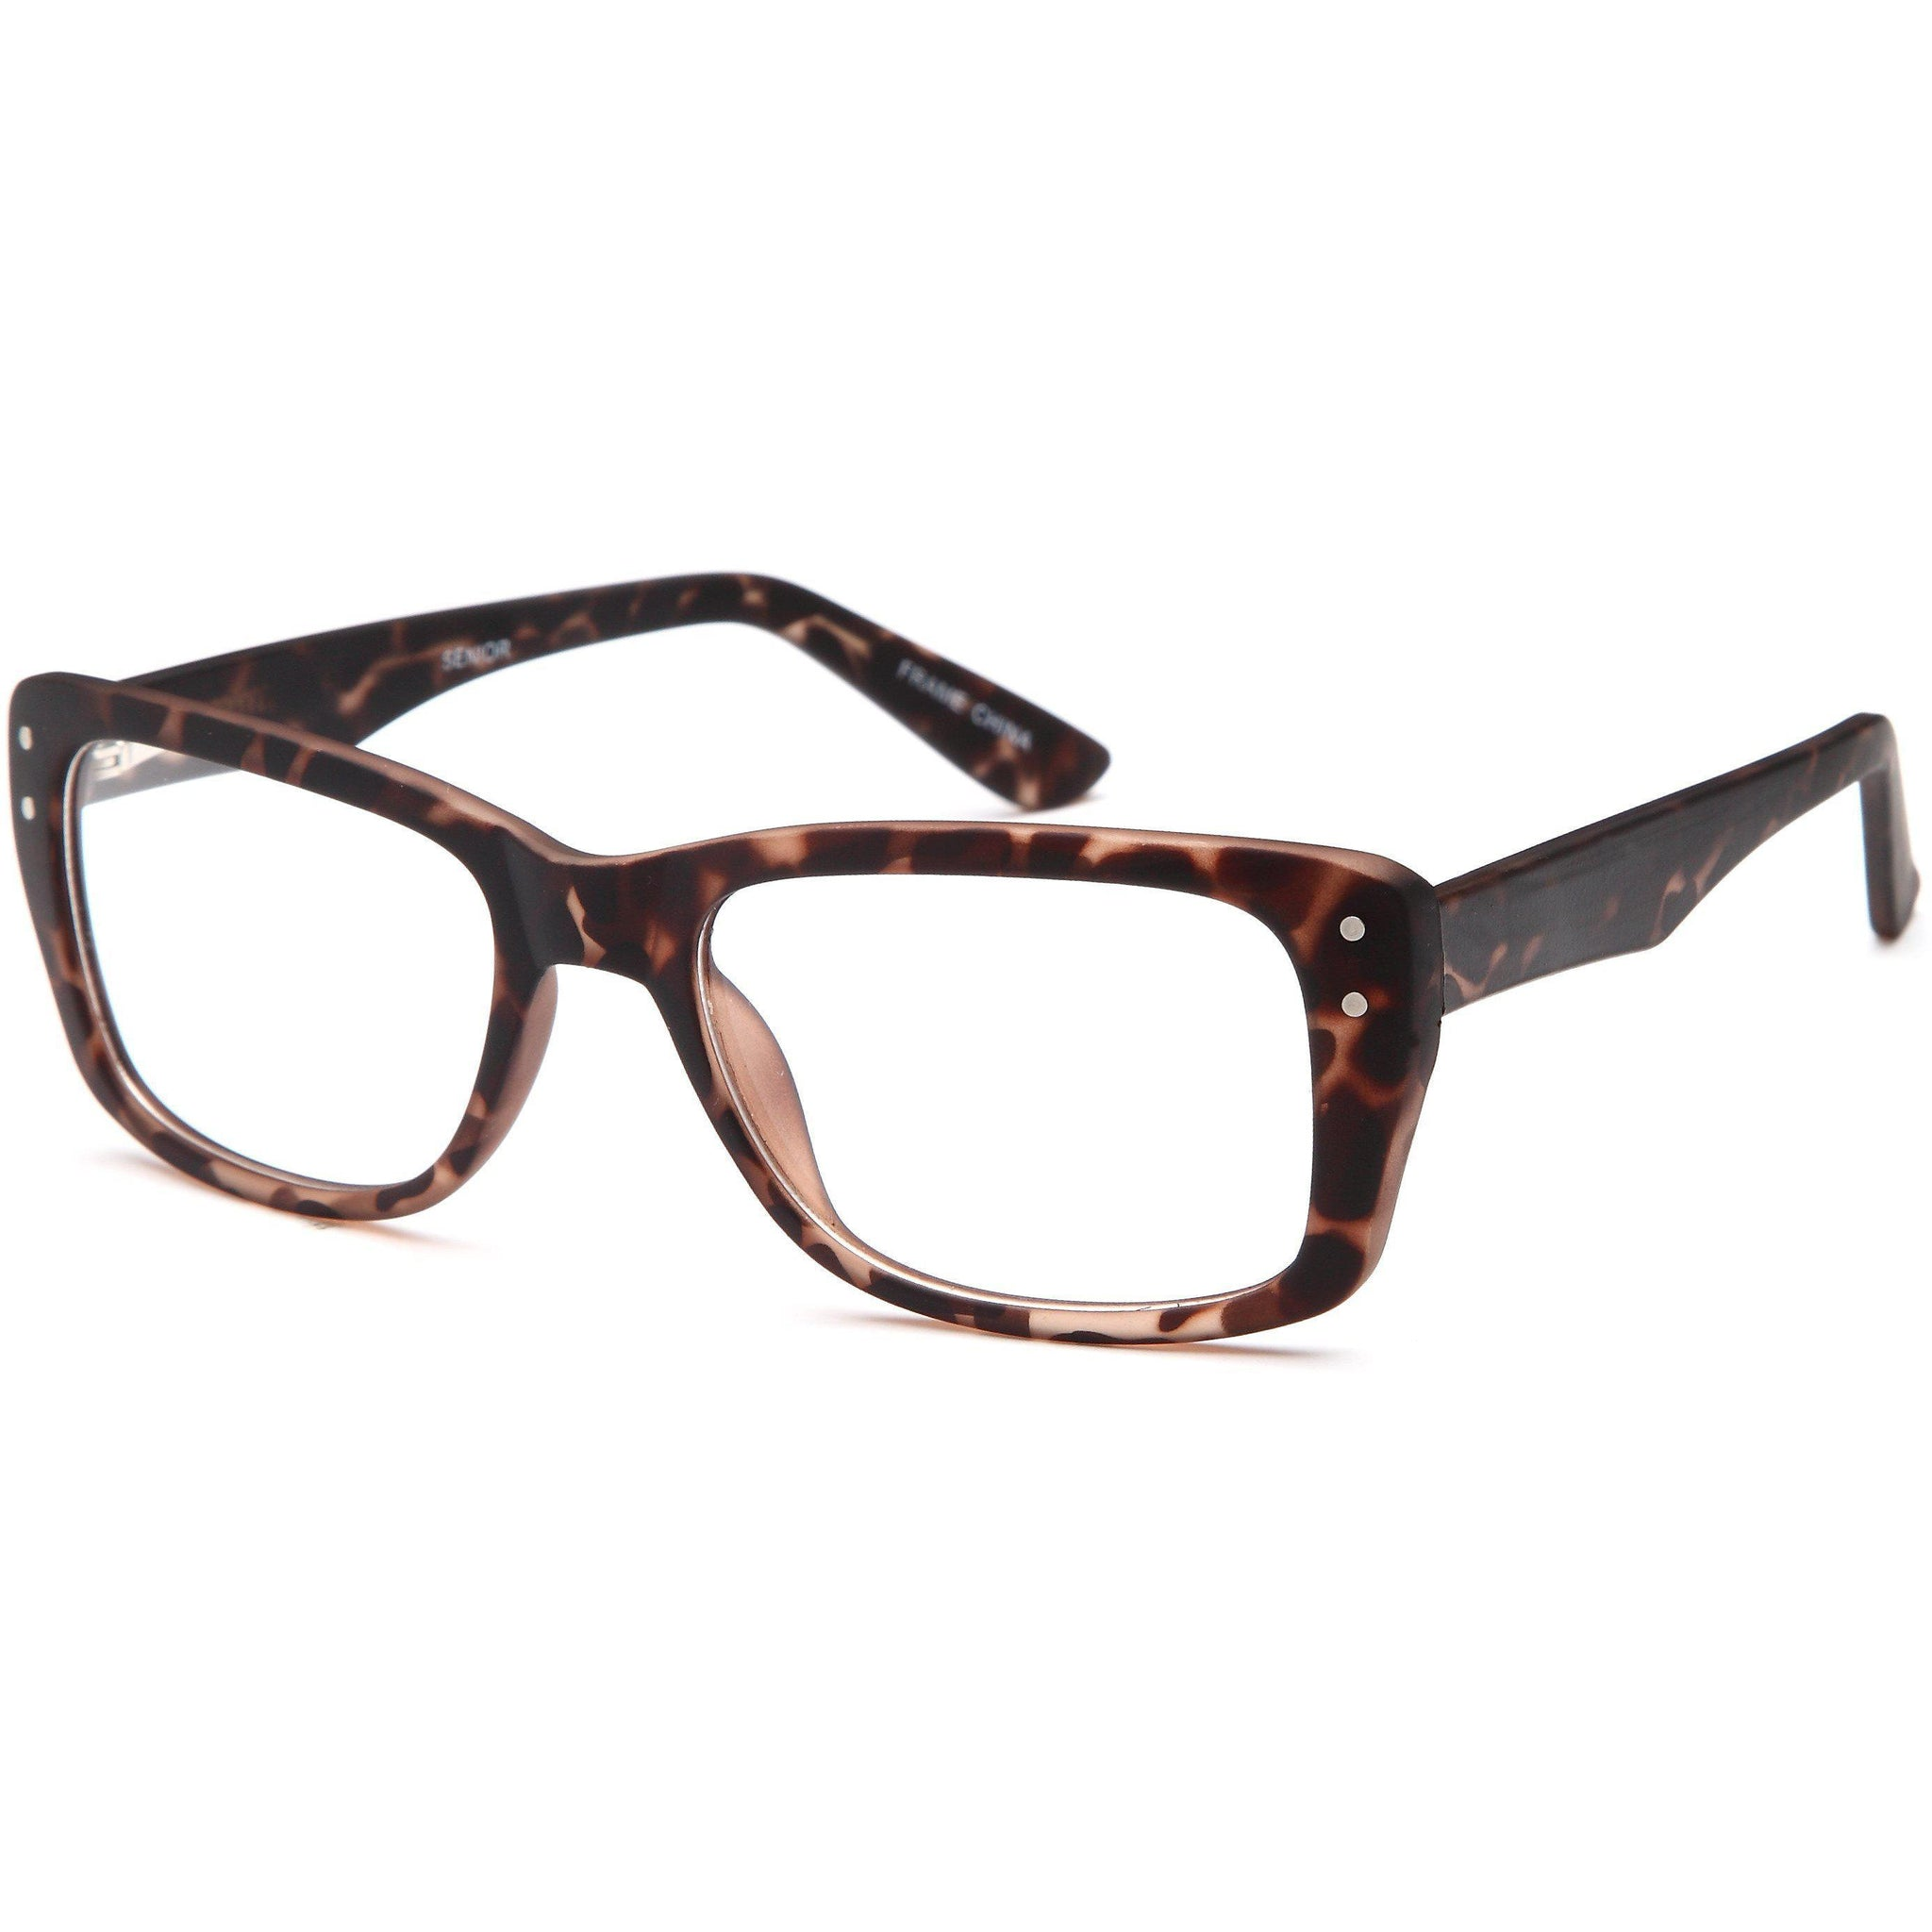 GEN Y Prescription Glasses SENIOR Eyeglasses Frame